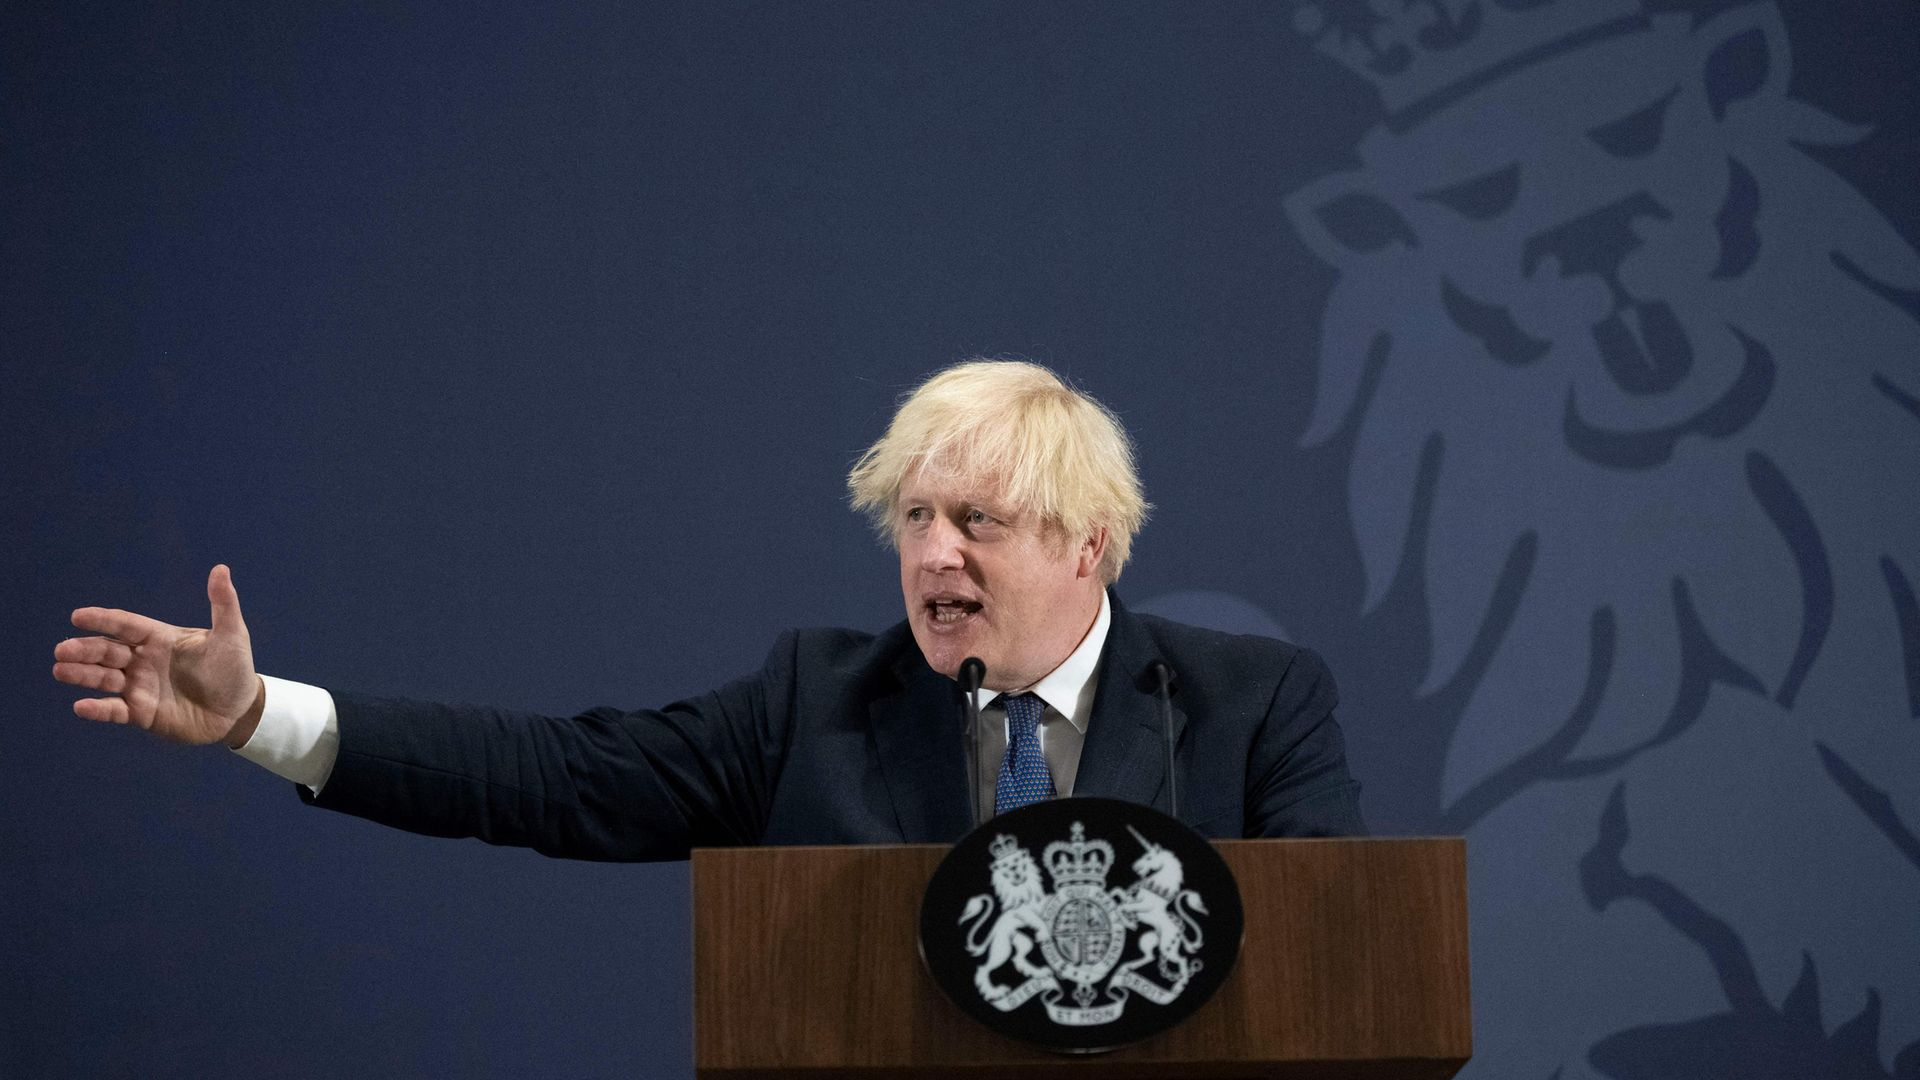 Boris Johnson gesticulates during his rambling and detail-light speech on levelling up in the regions - Credit: Photo by David Rose / POOL / AFP via Getty Images